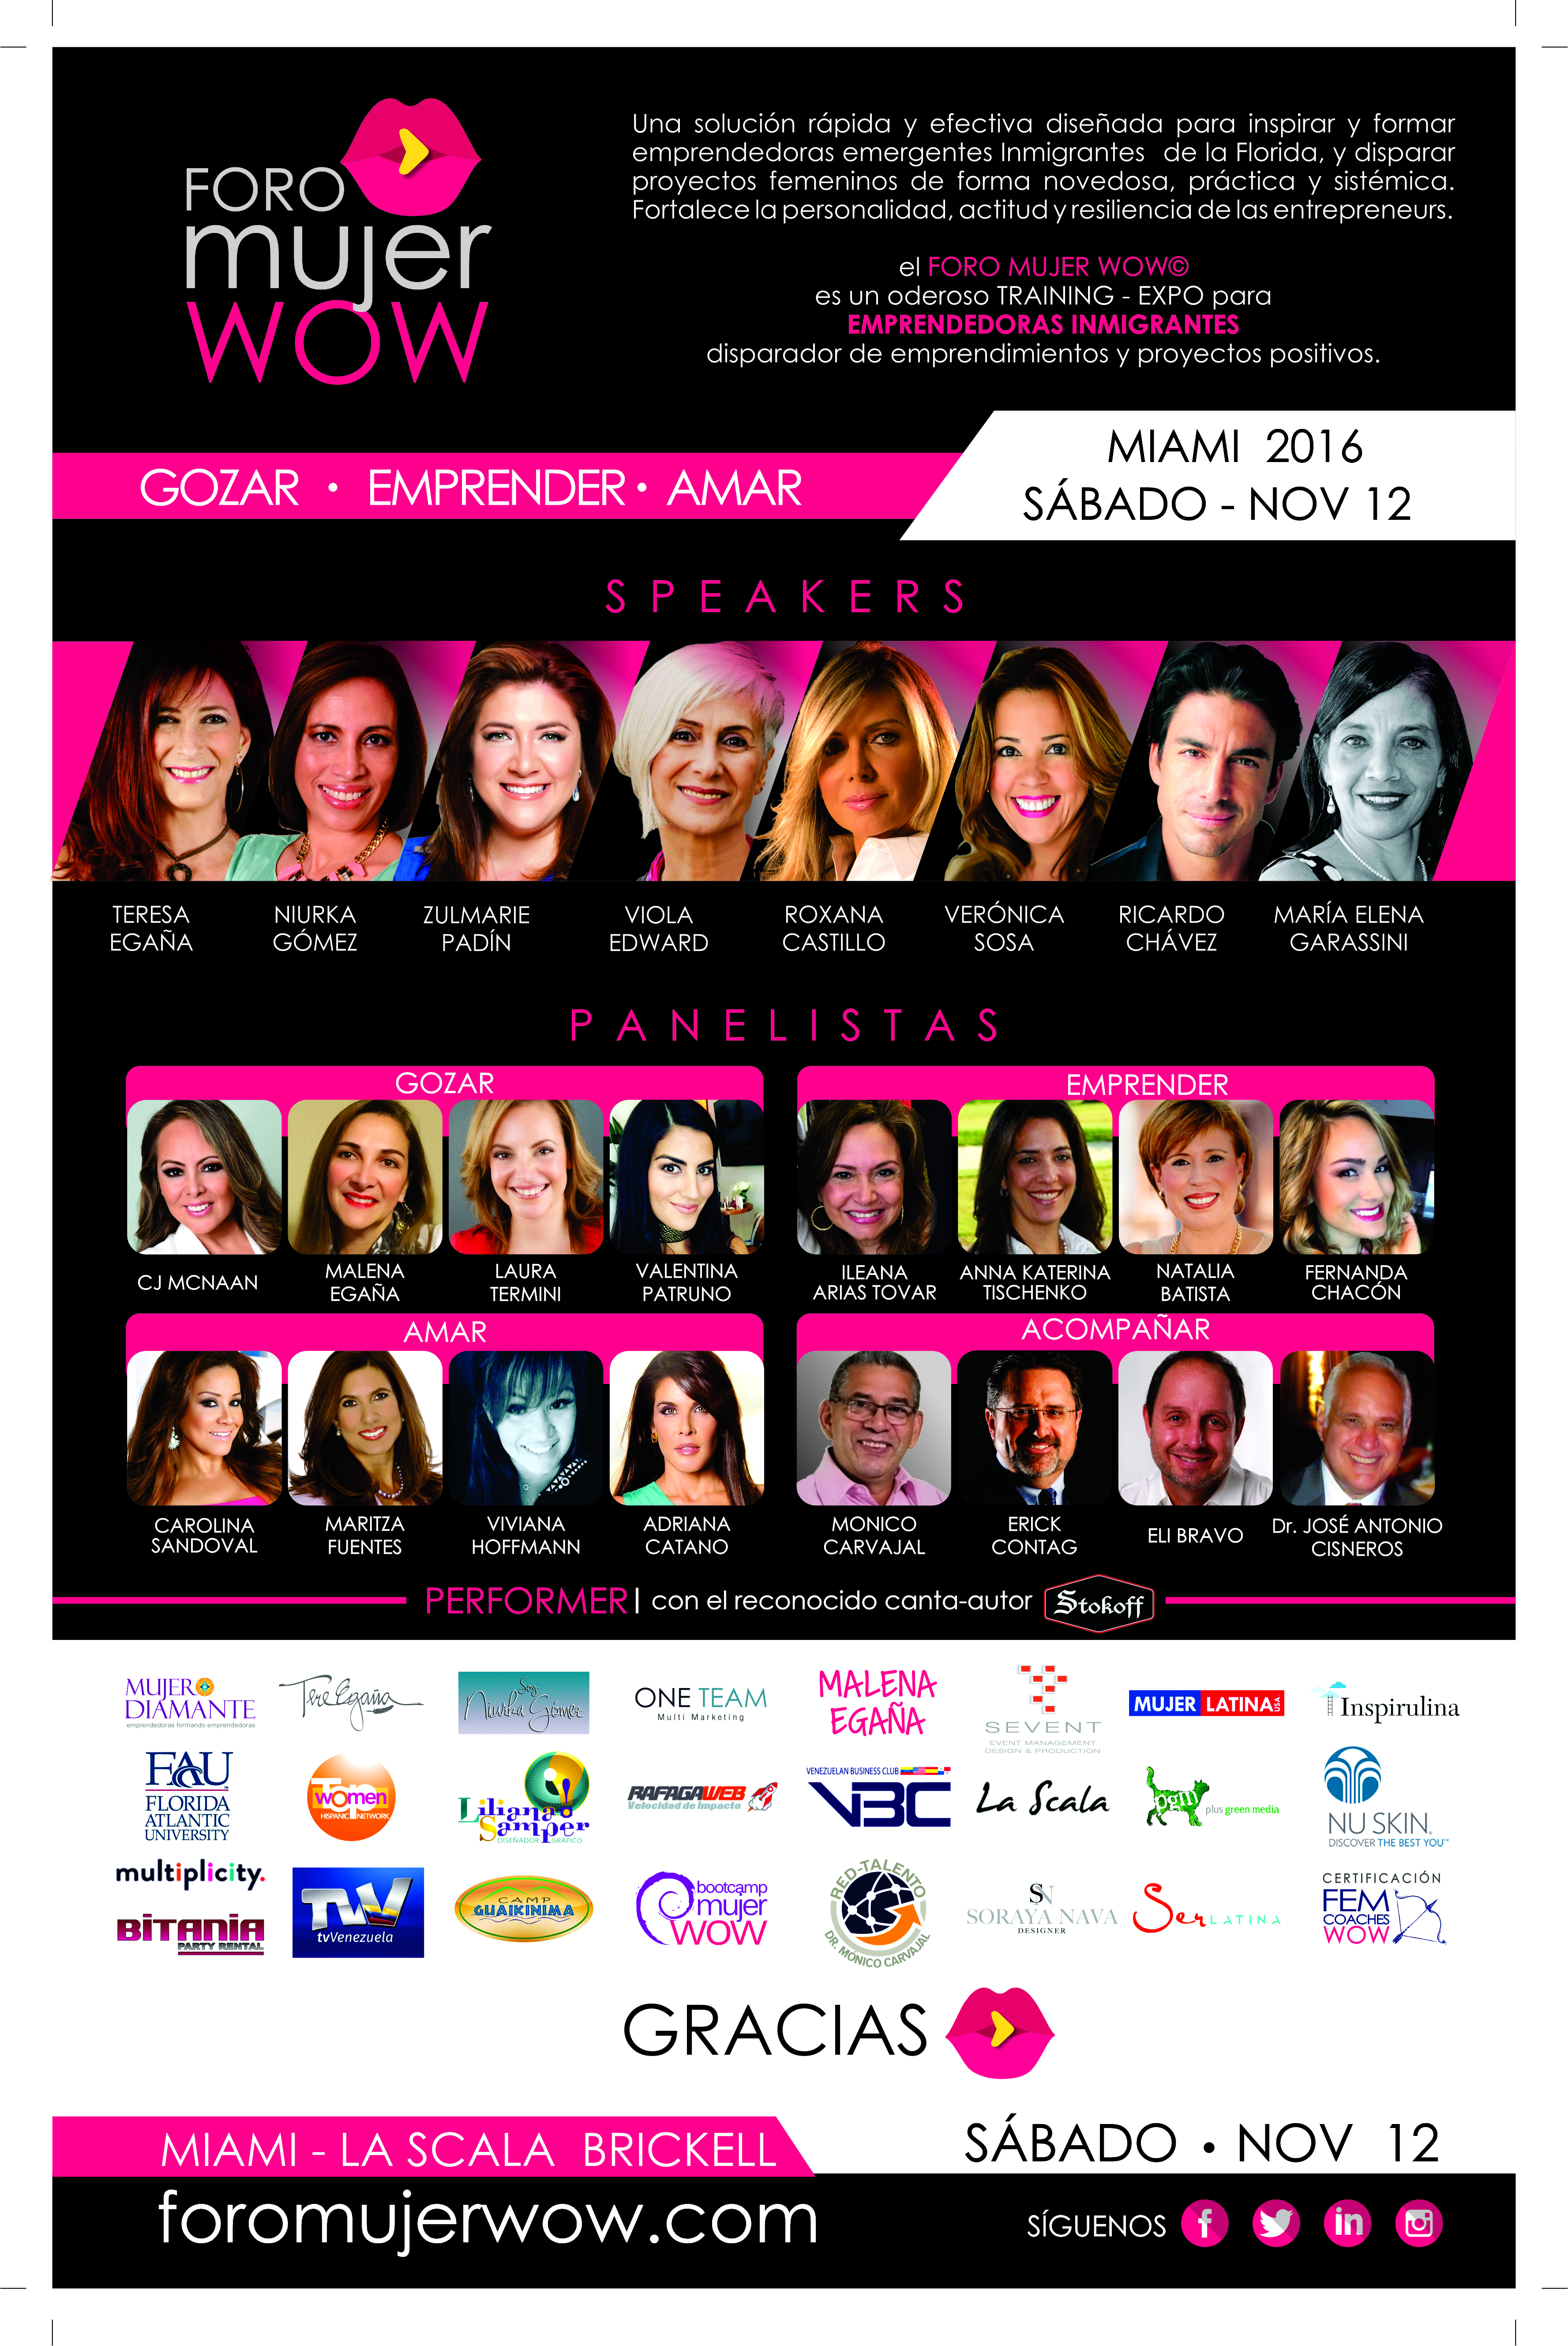 SPEAKERS FORO MUJER WOW 2016